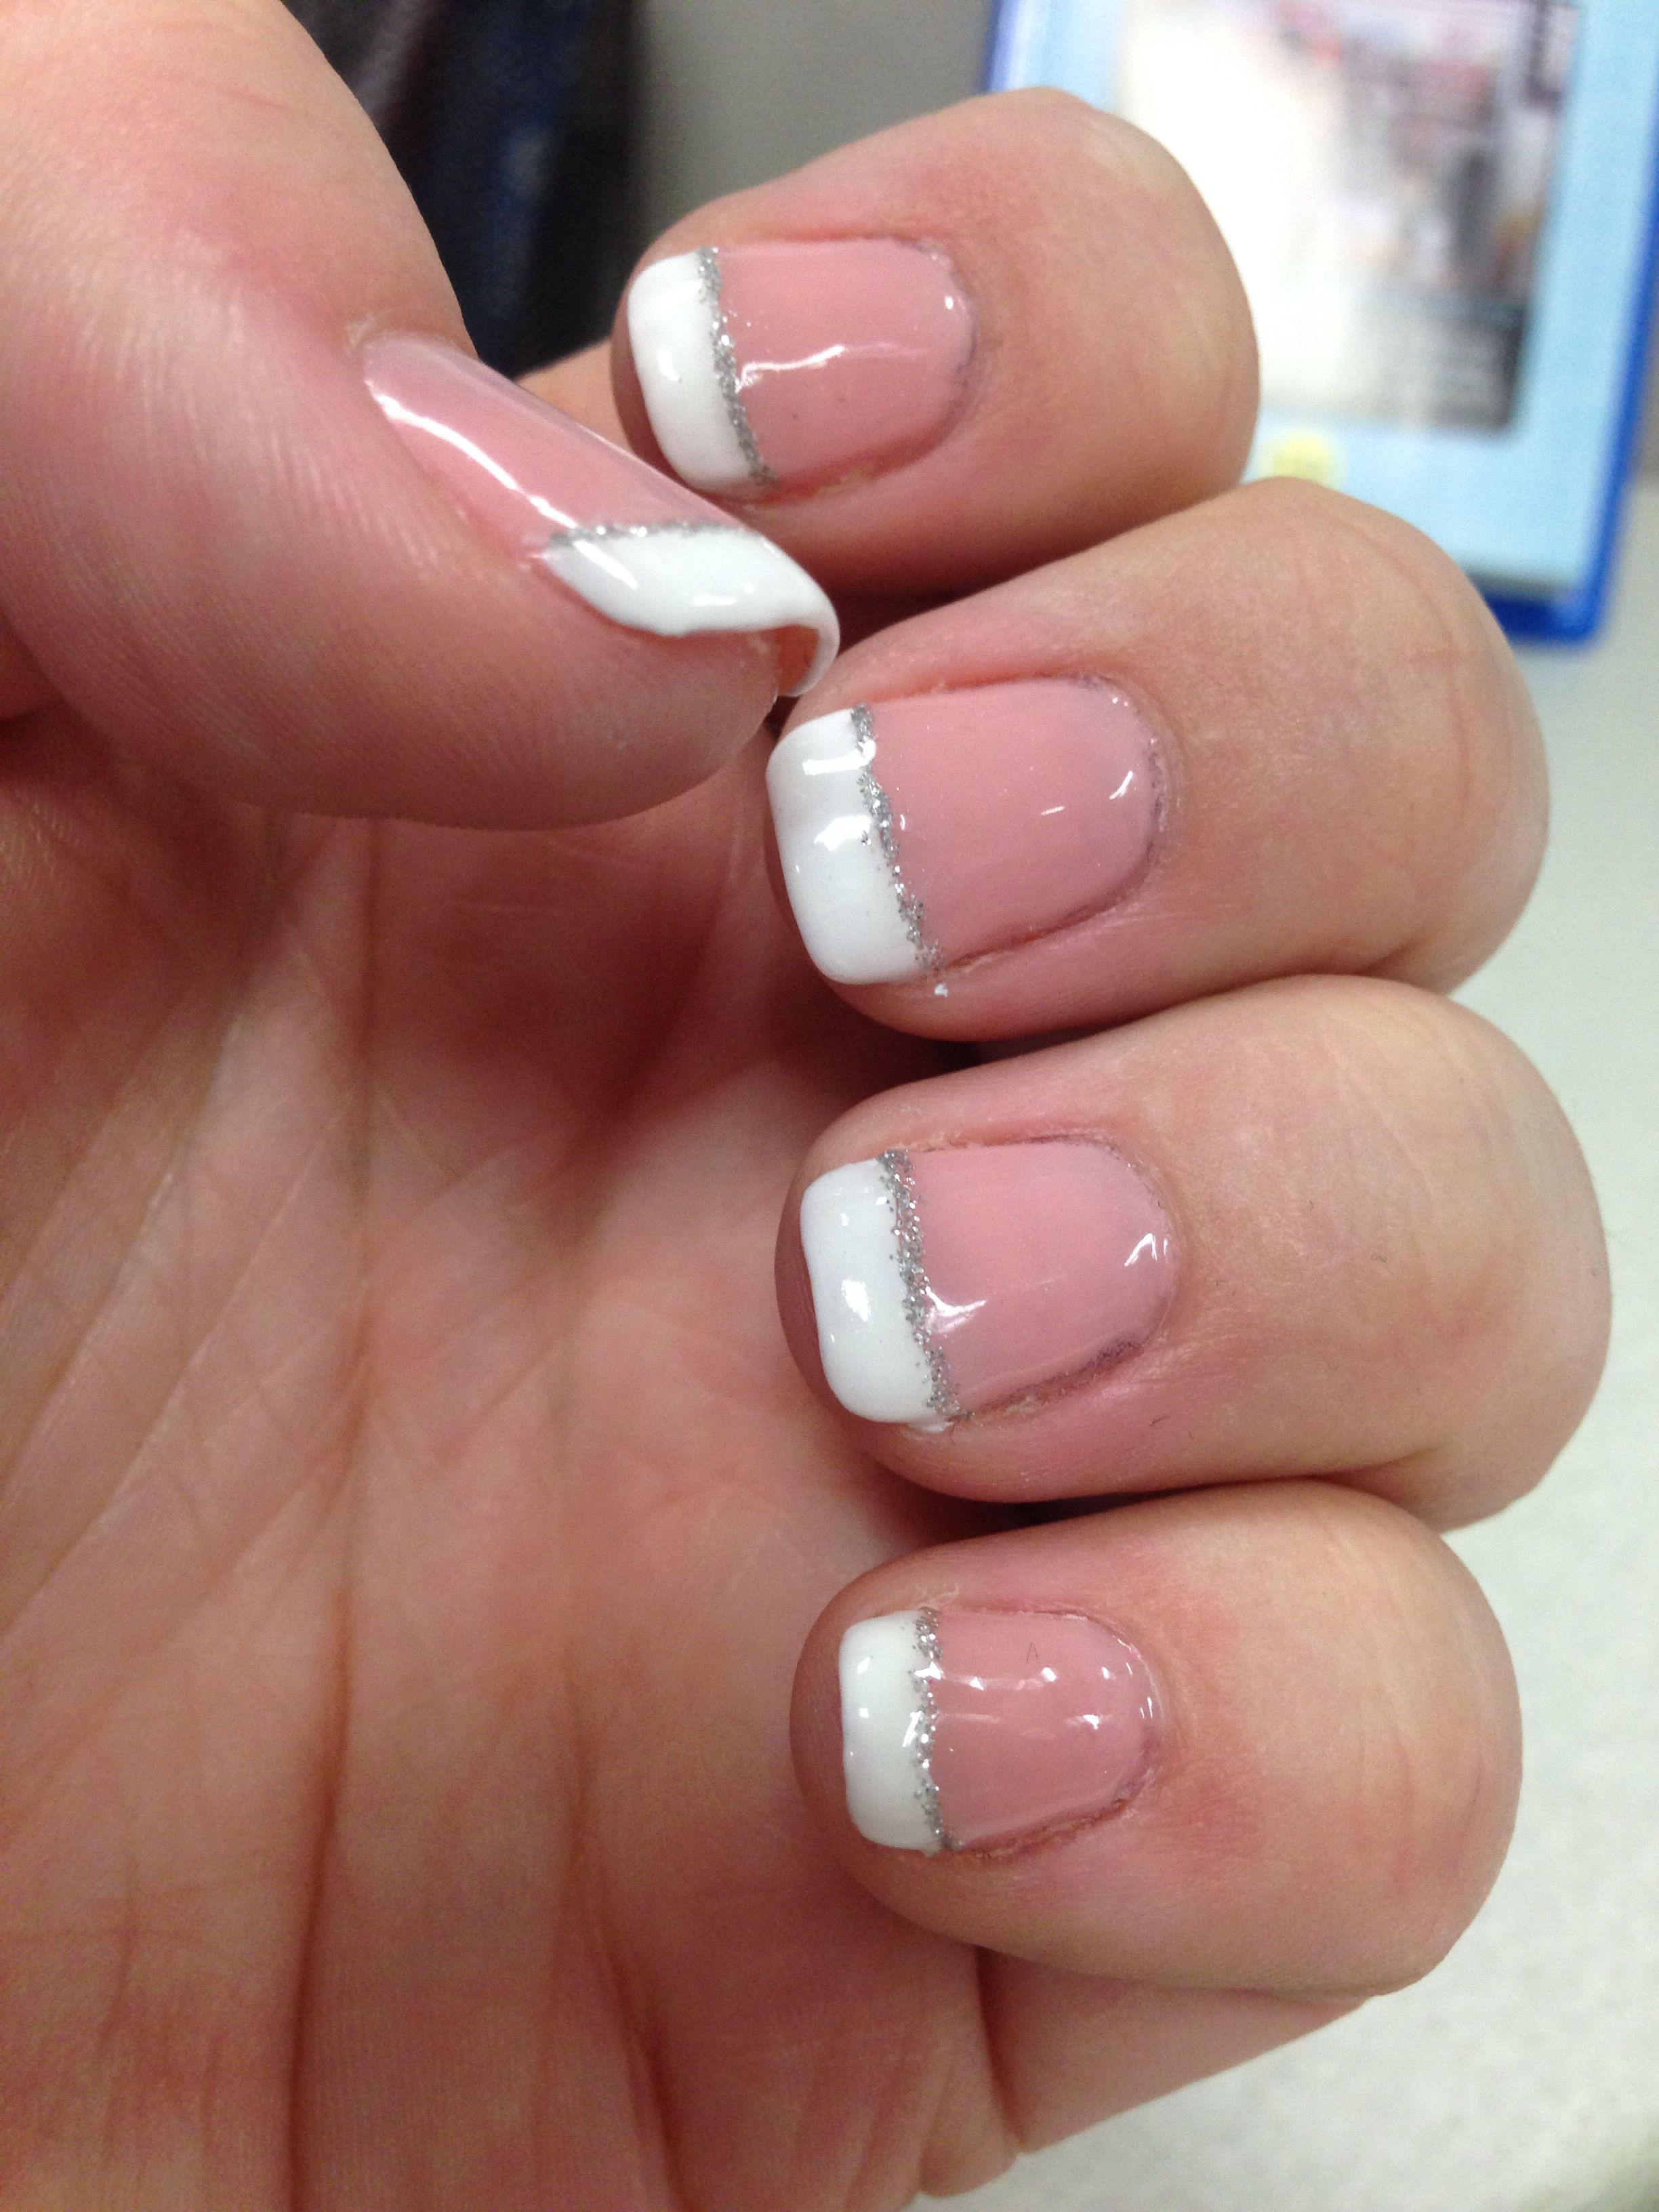 Pretty nails! #76 nude with French tips and silver line | Nails ...